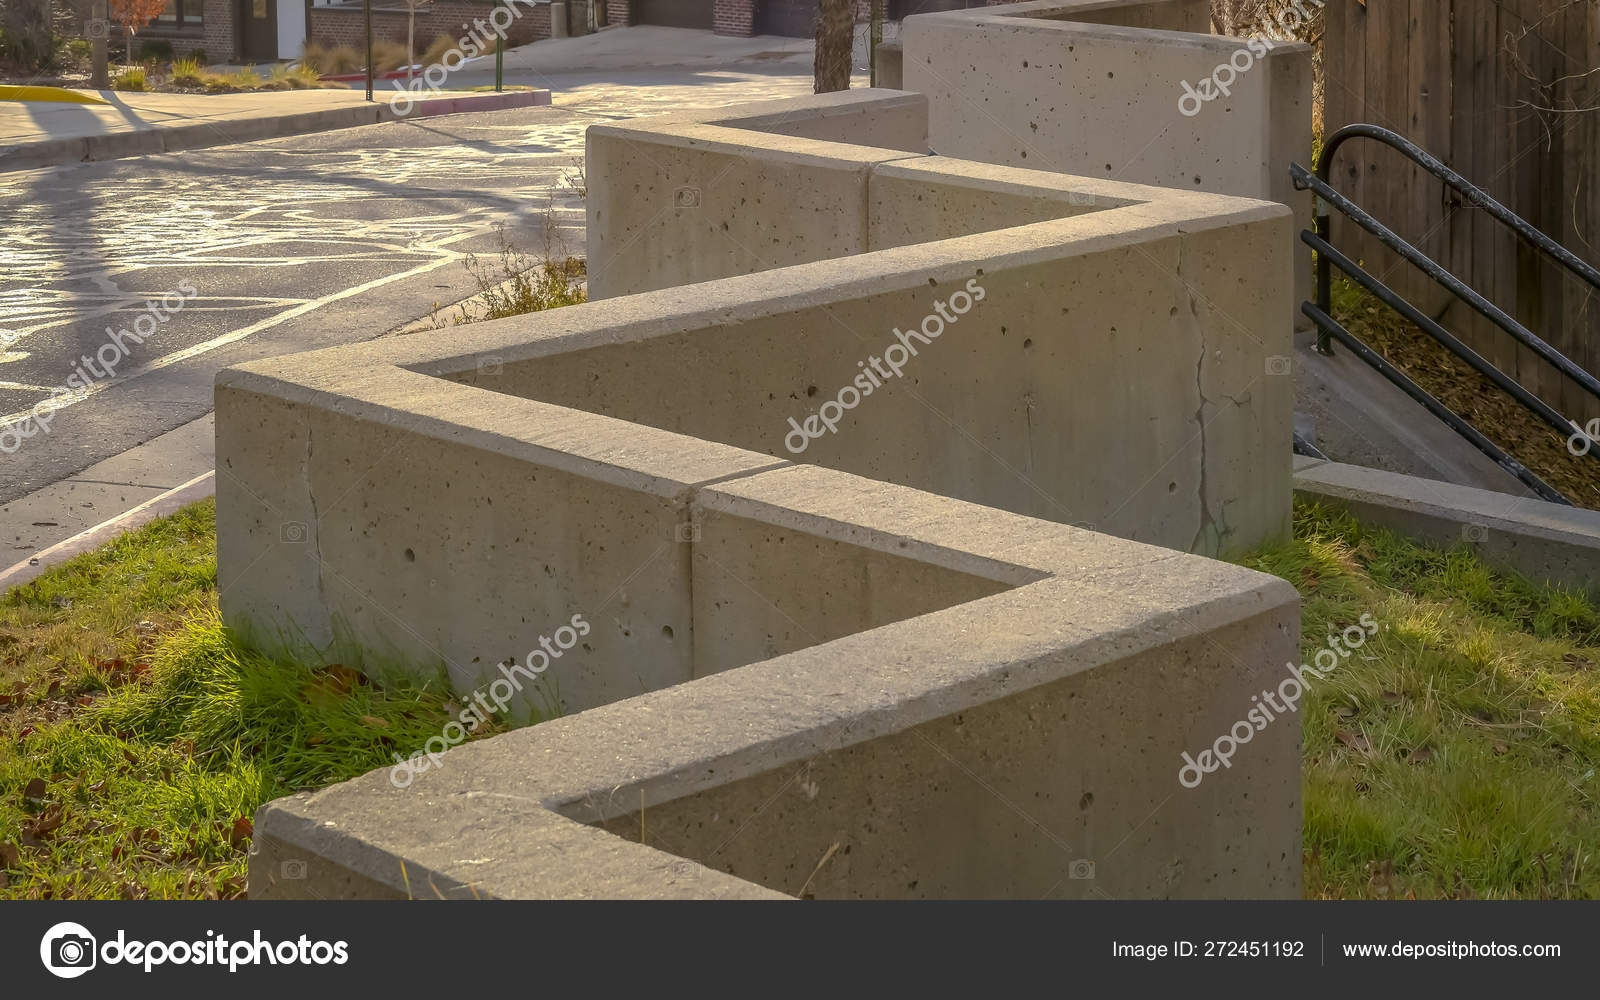 Panorama Outdoor Stairs Connected To A Zig Zag Concrete Barrier | Concrete Stairs Design Outdoor | Beautiful | Roof Deck | Storage Underneath | Exterior | Modern